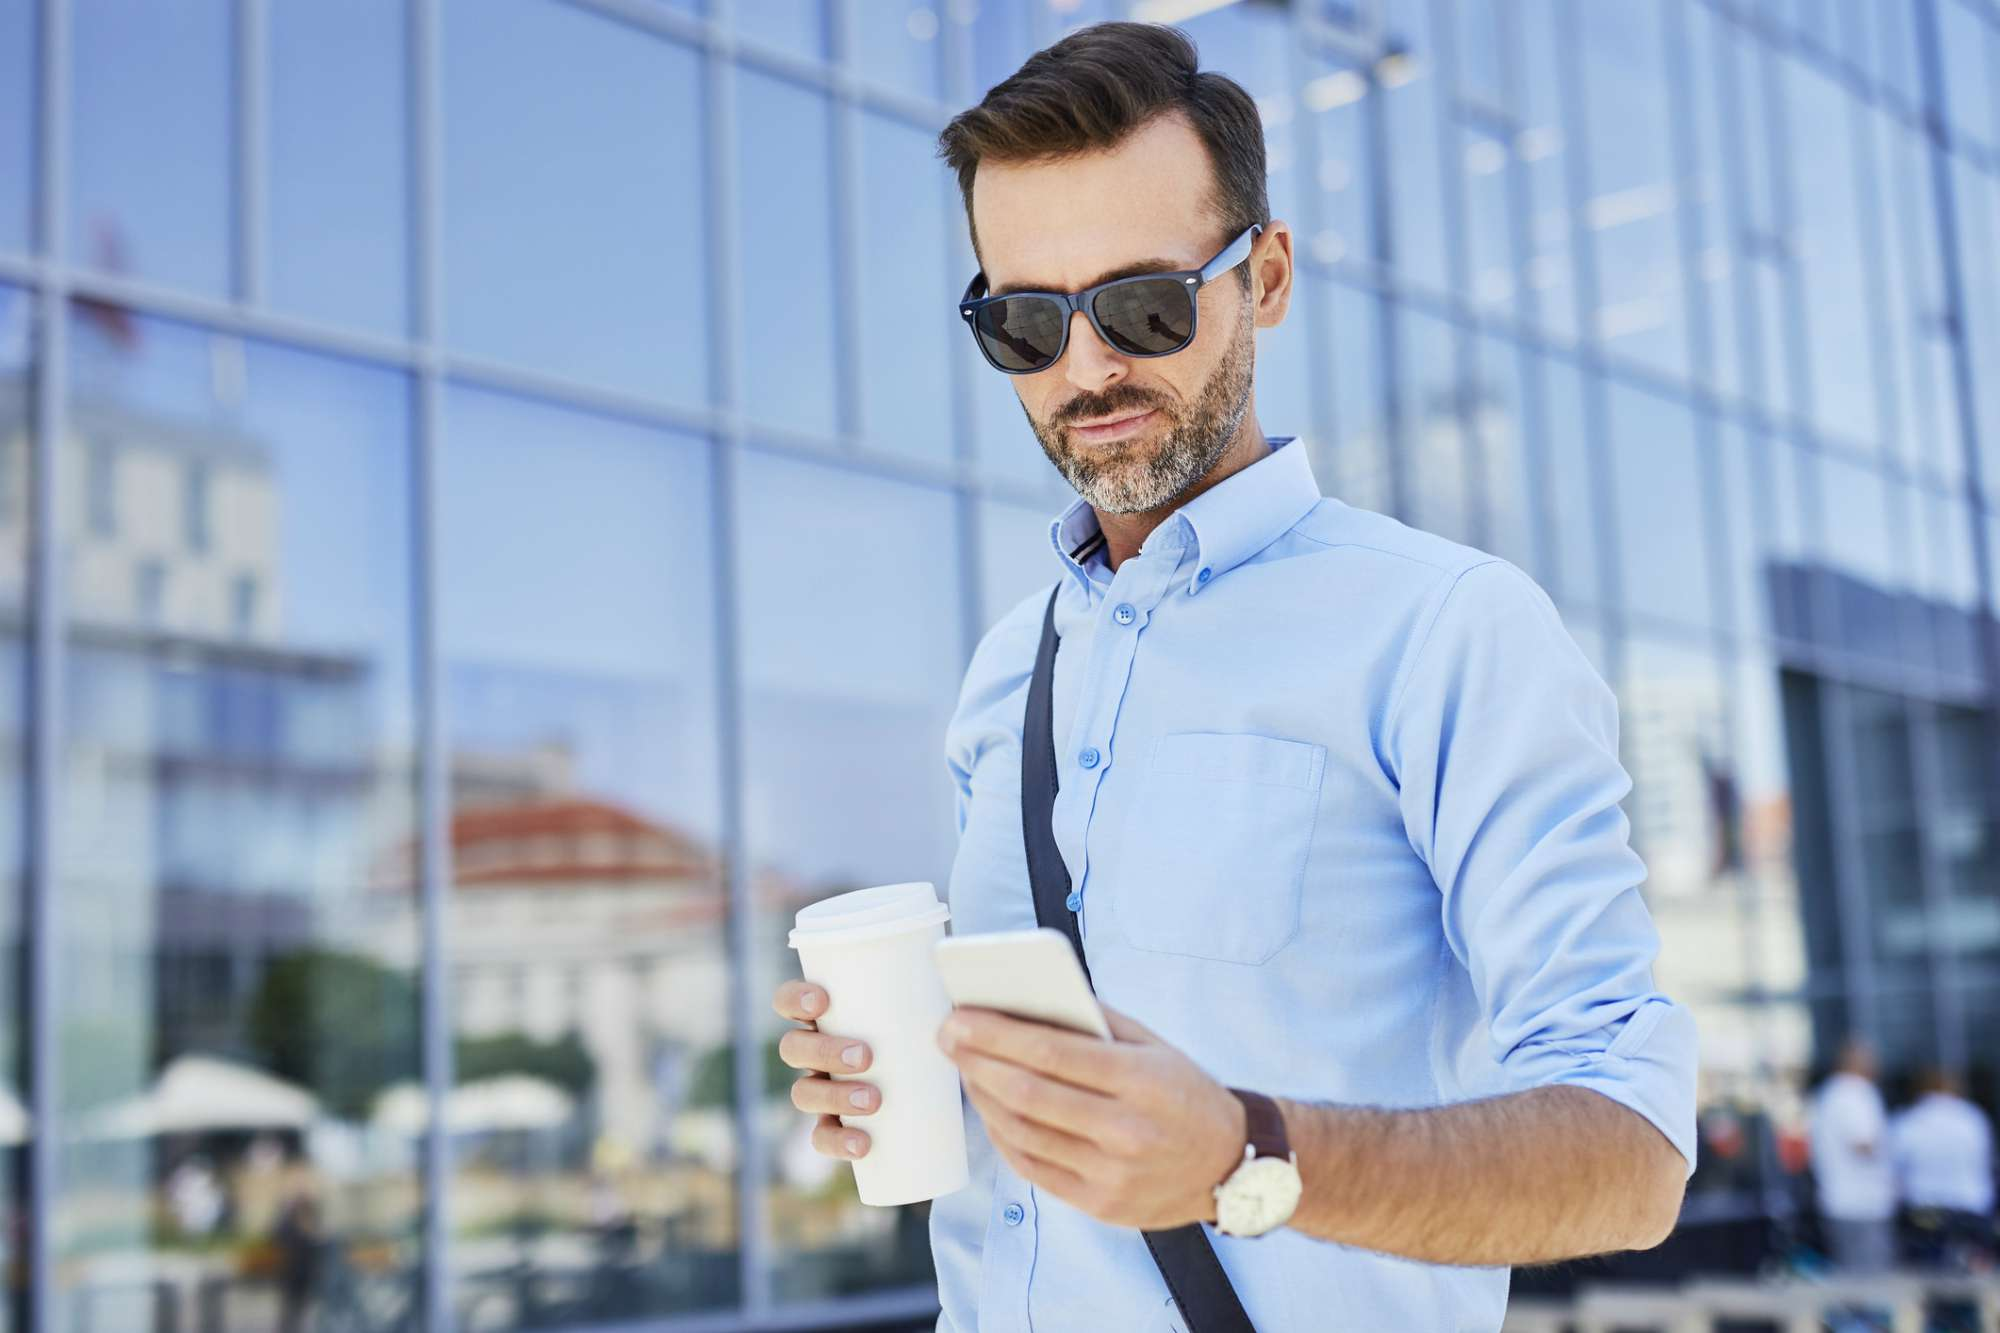 Man in sunglasses outside a glass building